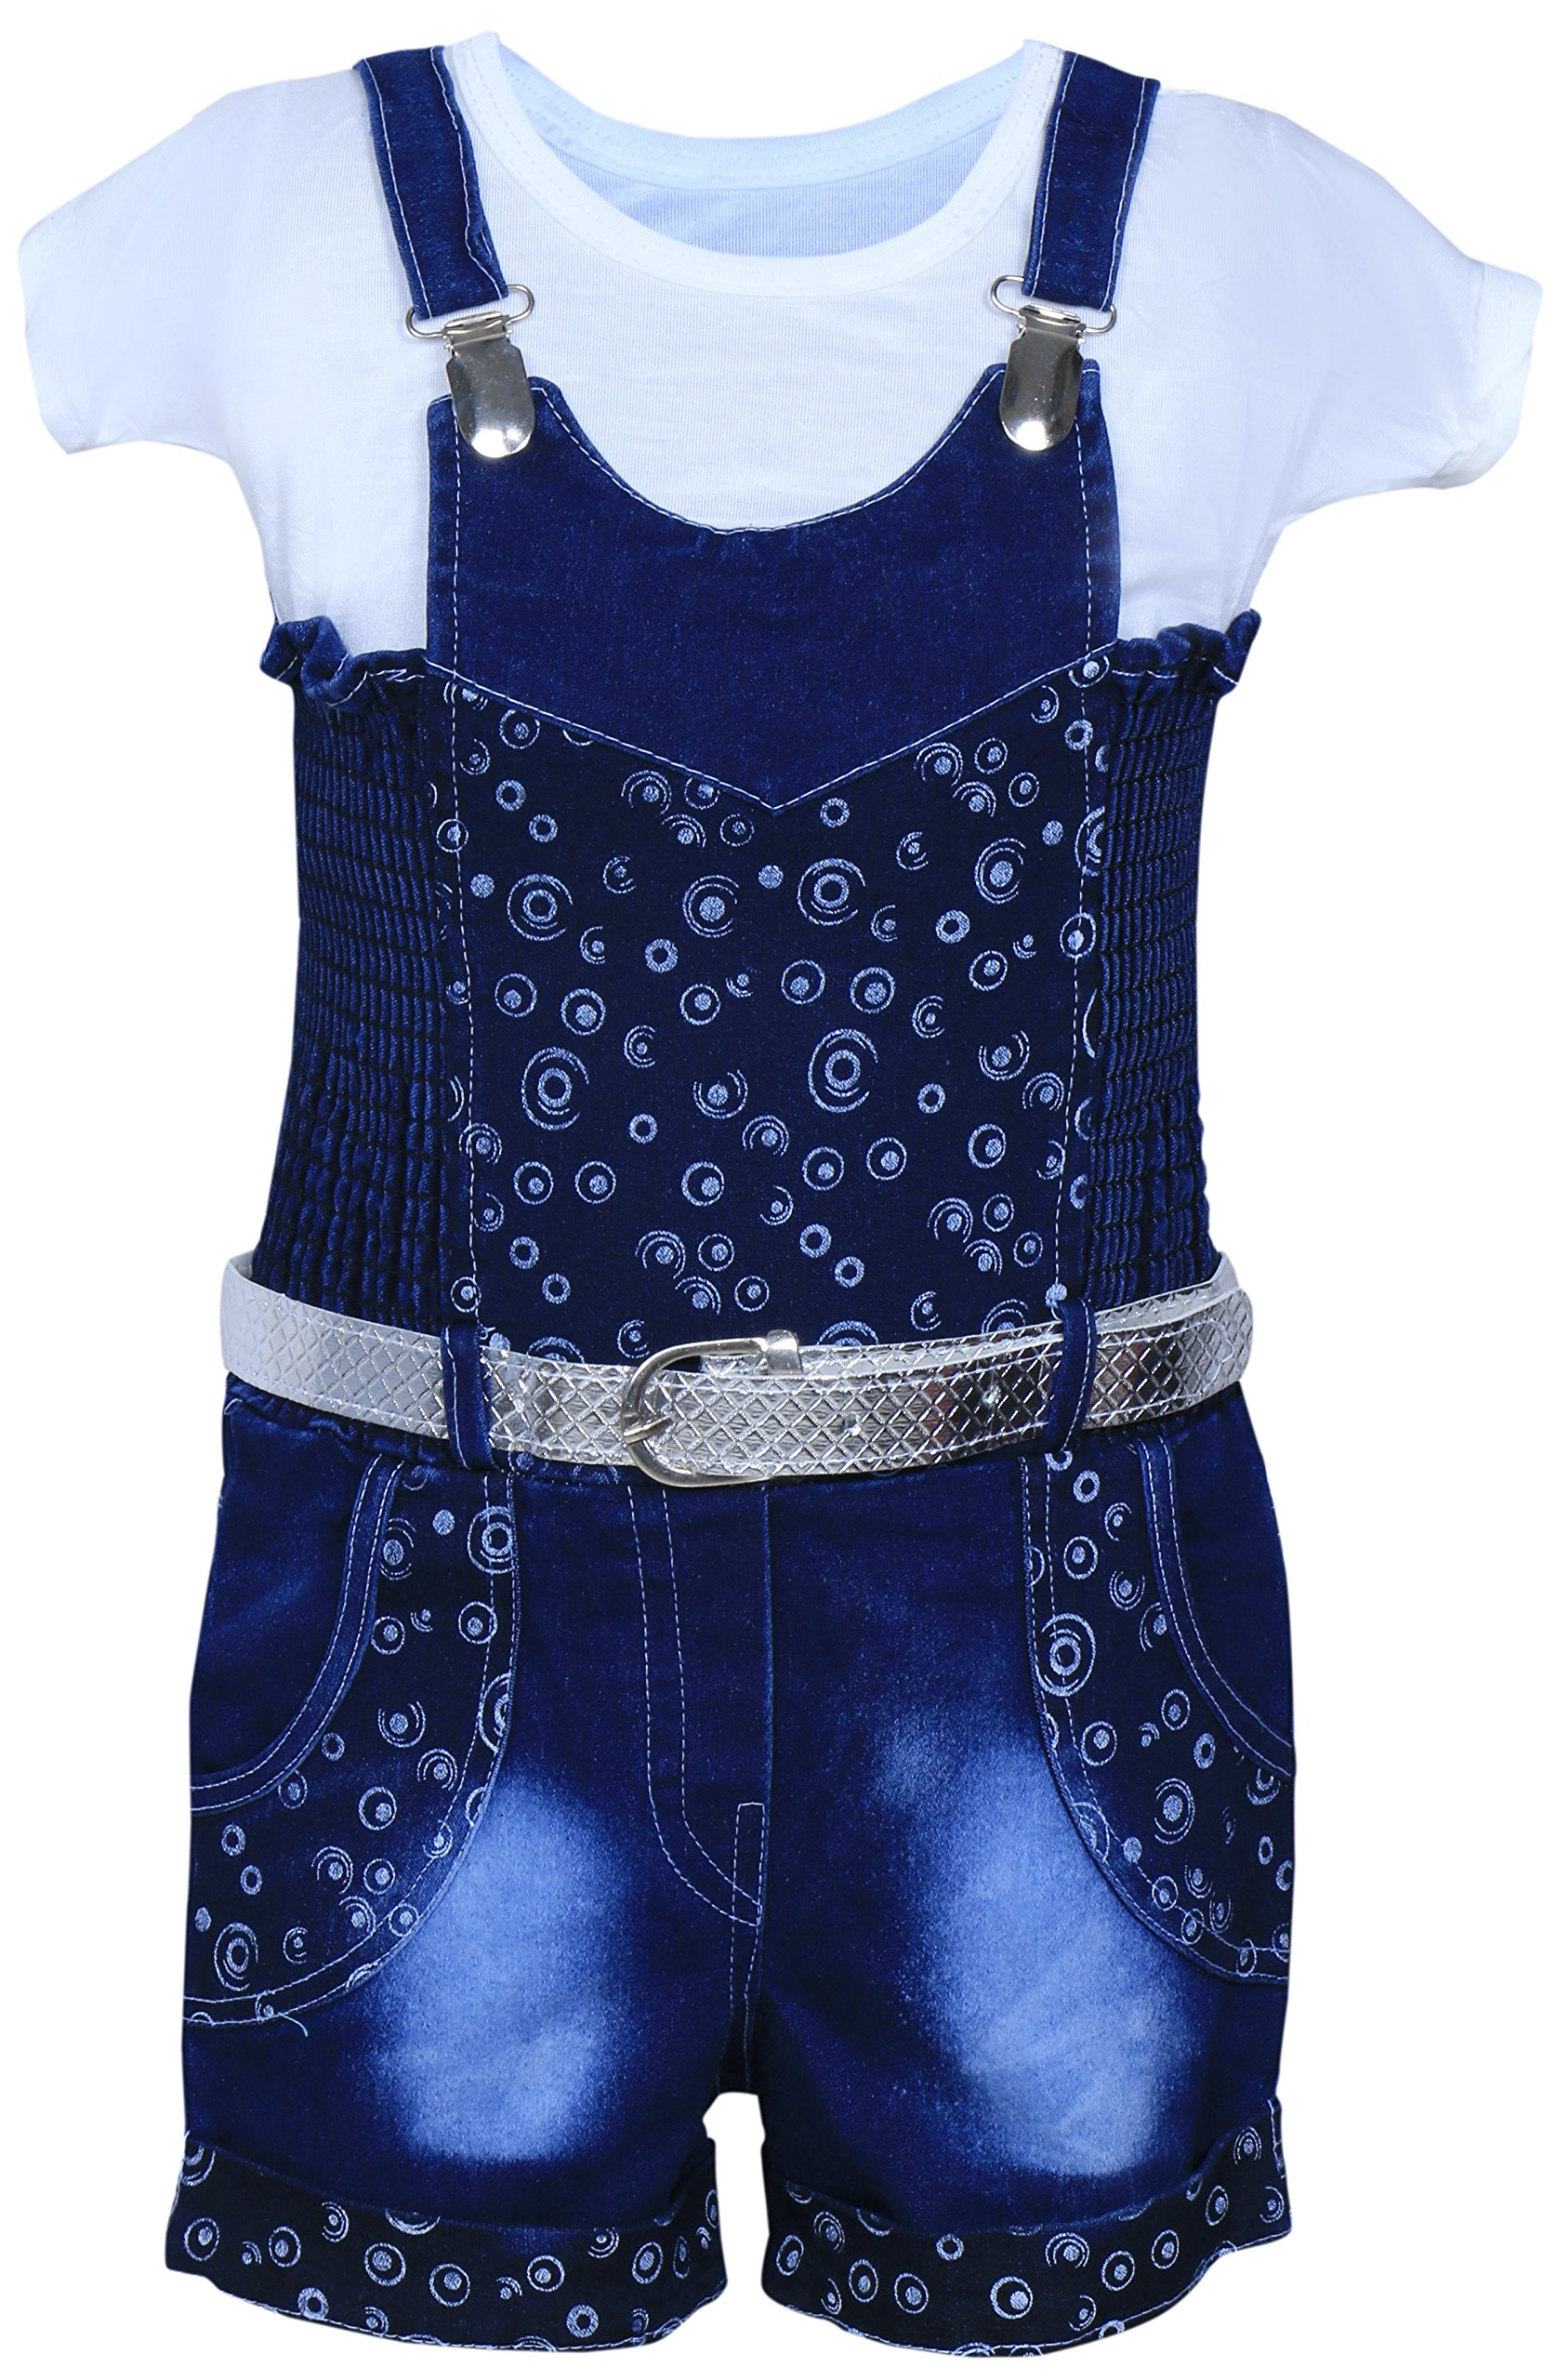 09b2b41d23725 MPC Cute Fashion Baby Girl's Infant Jeans Dungaree Jumpsuit (Blue) product  image